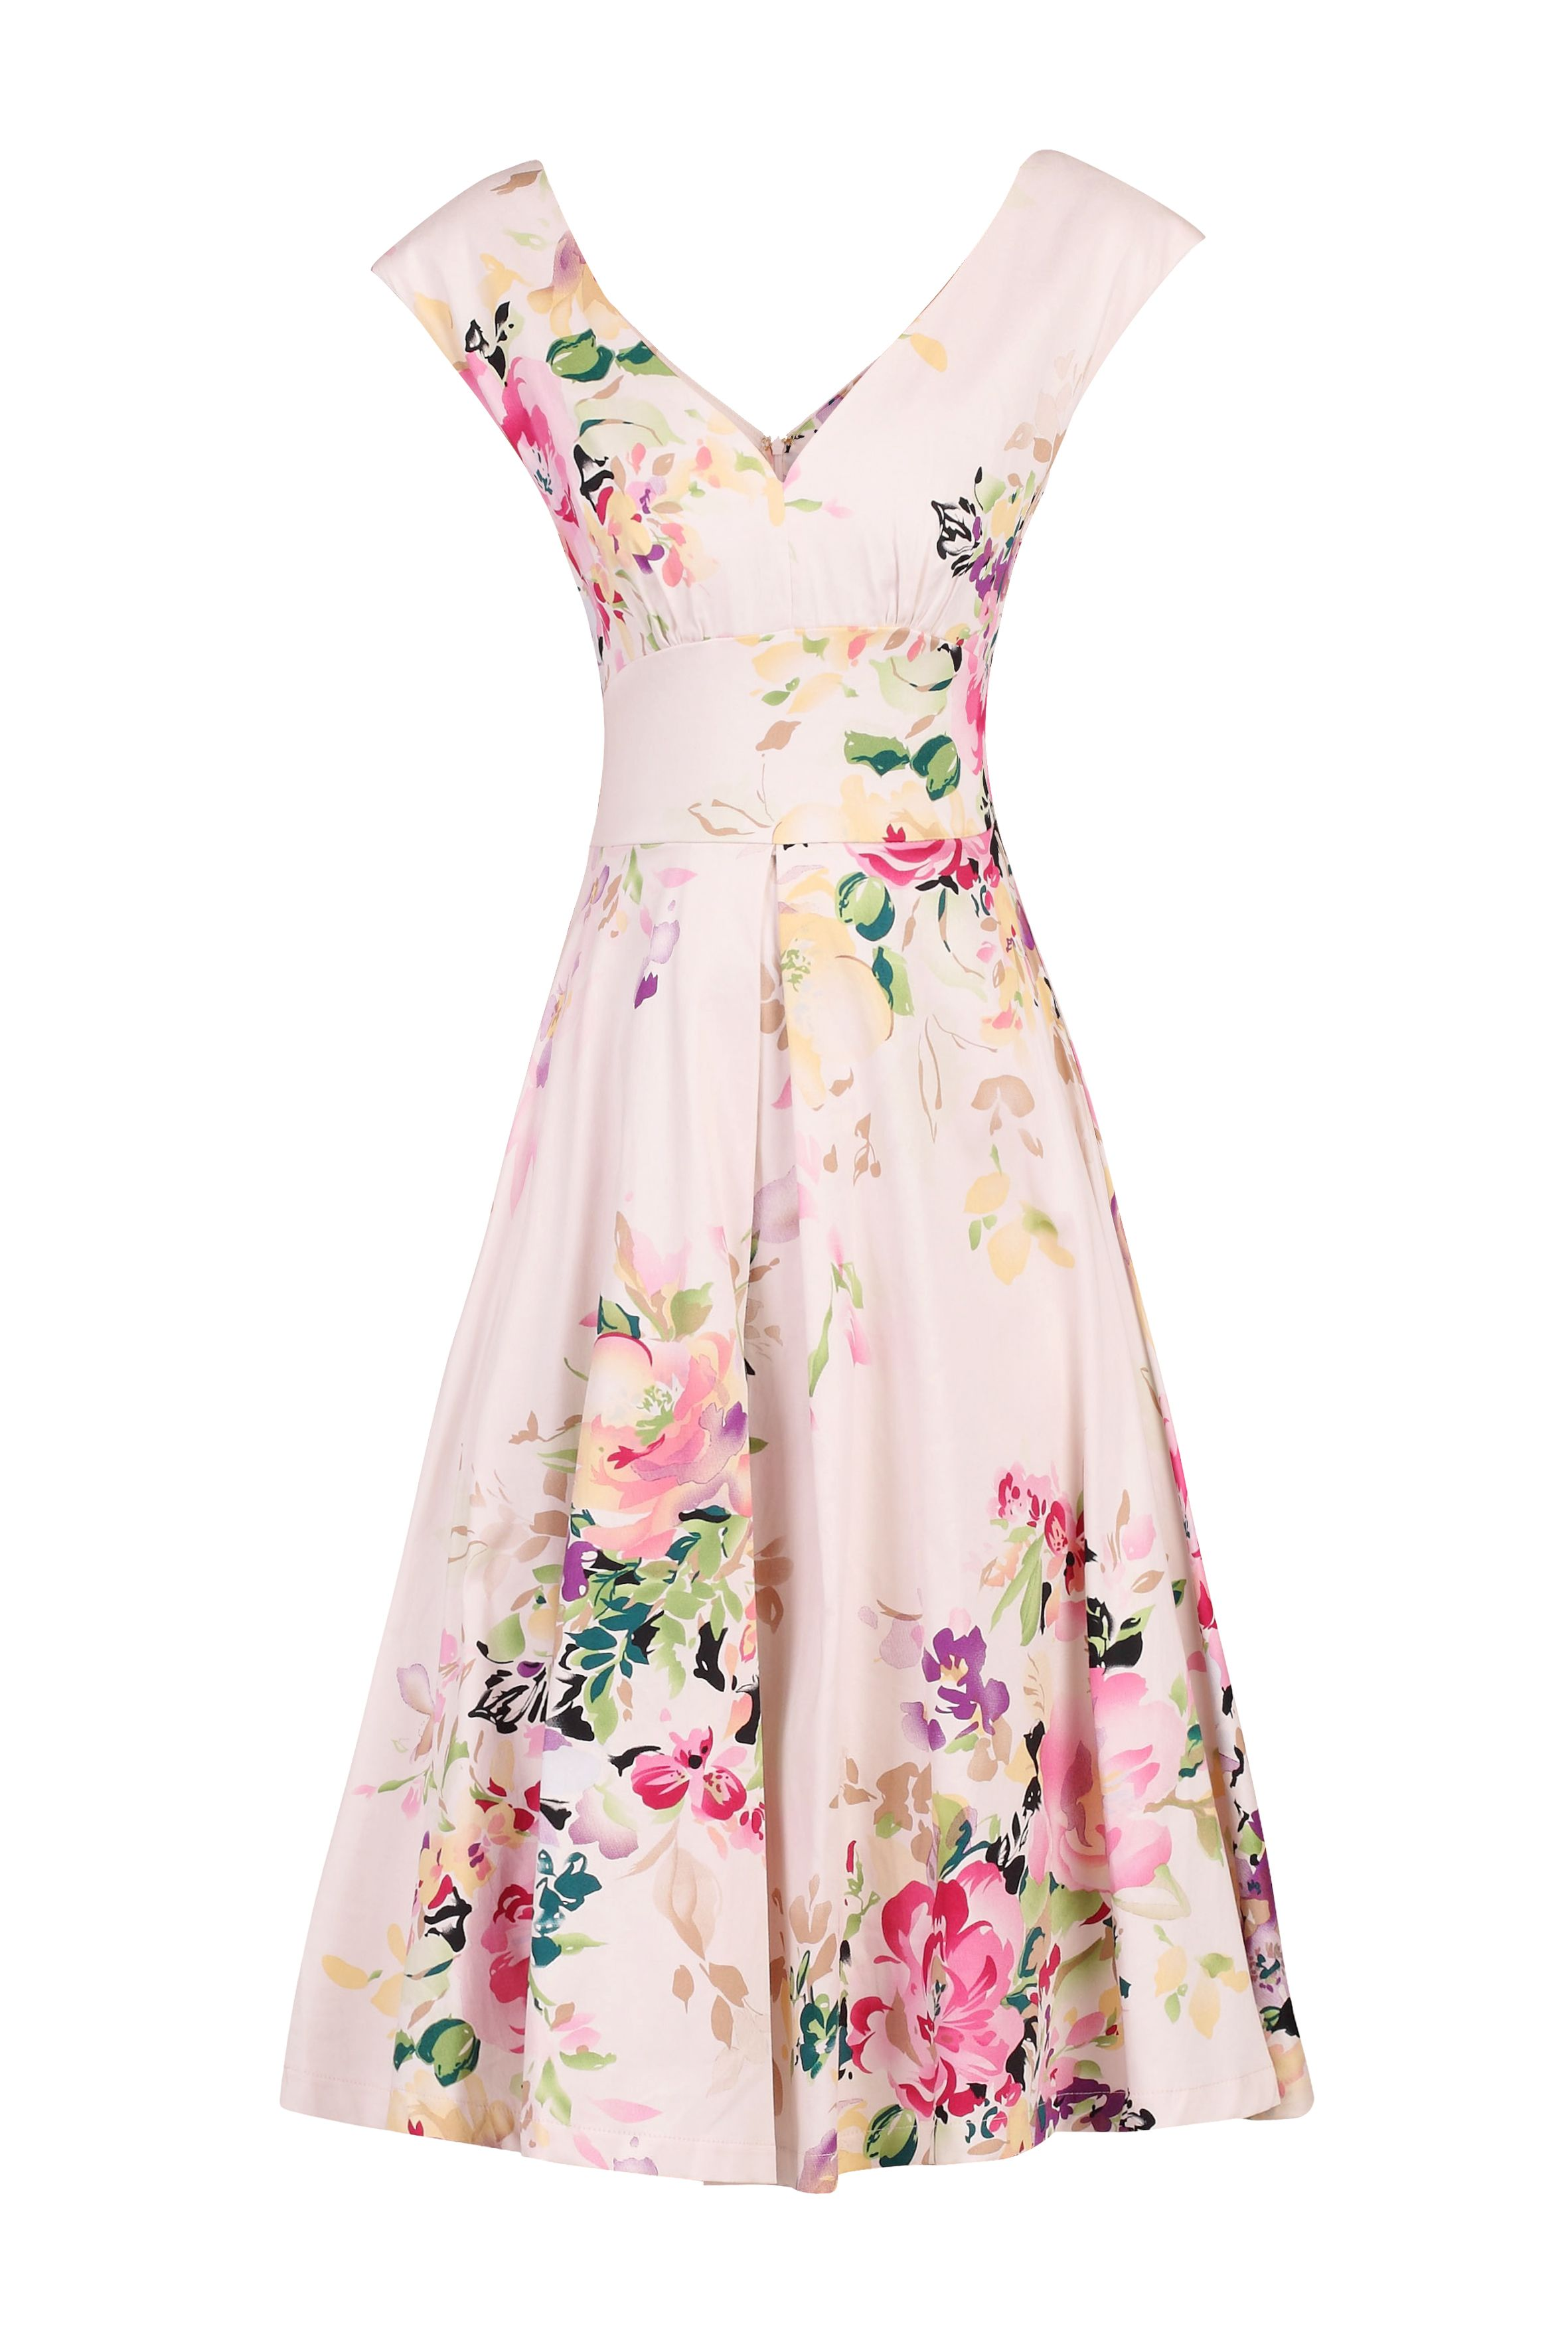 Jolie Moi Floral Print Sweatheart Neck Swing Dress, Pink